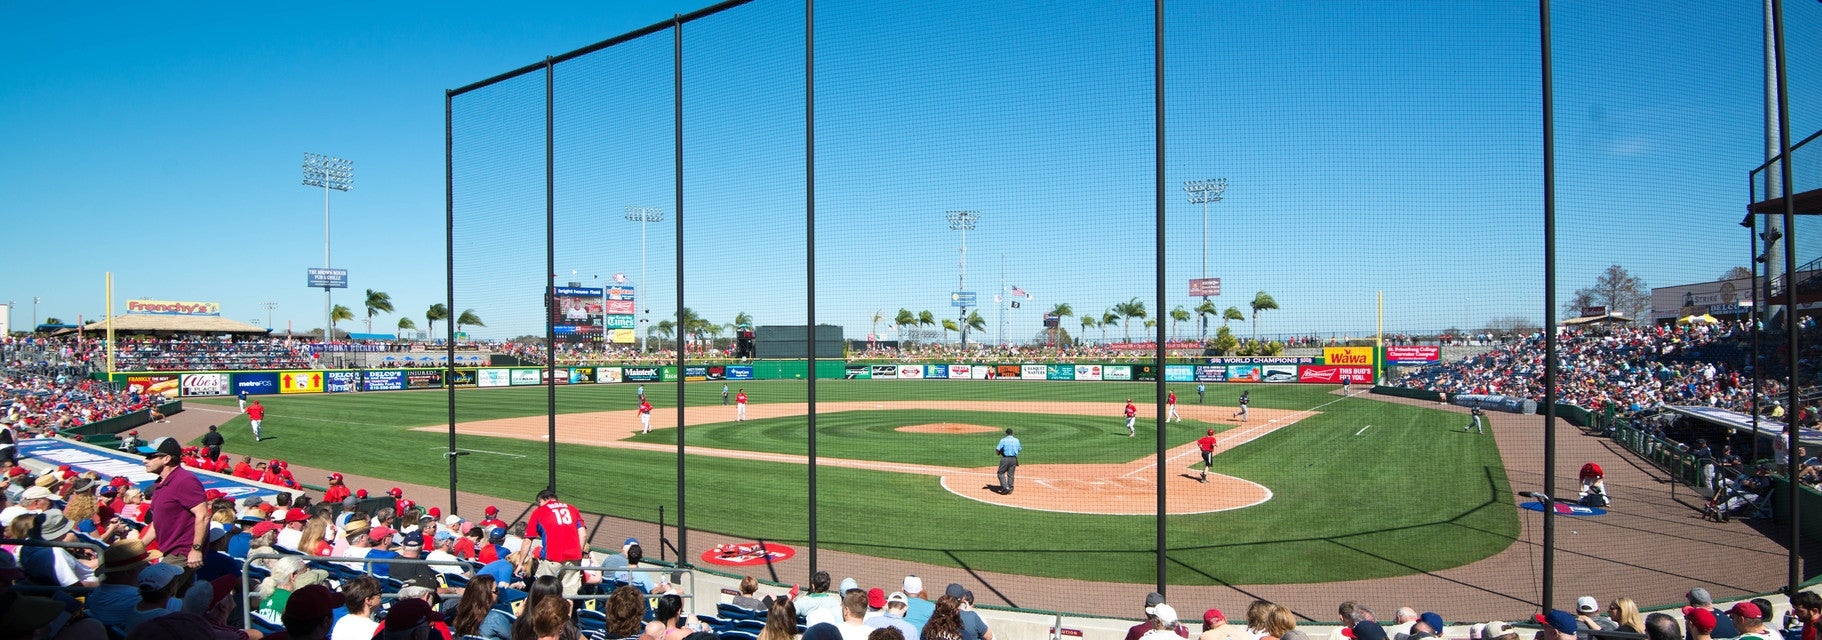 Phillies - Spring Training Tickets